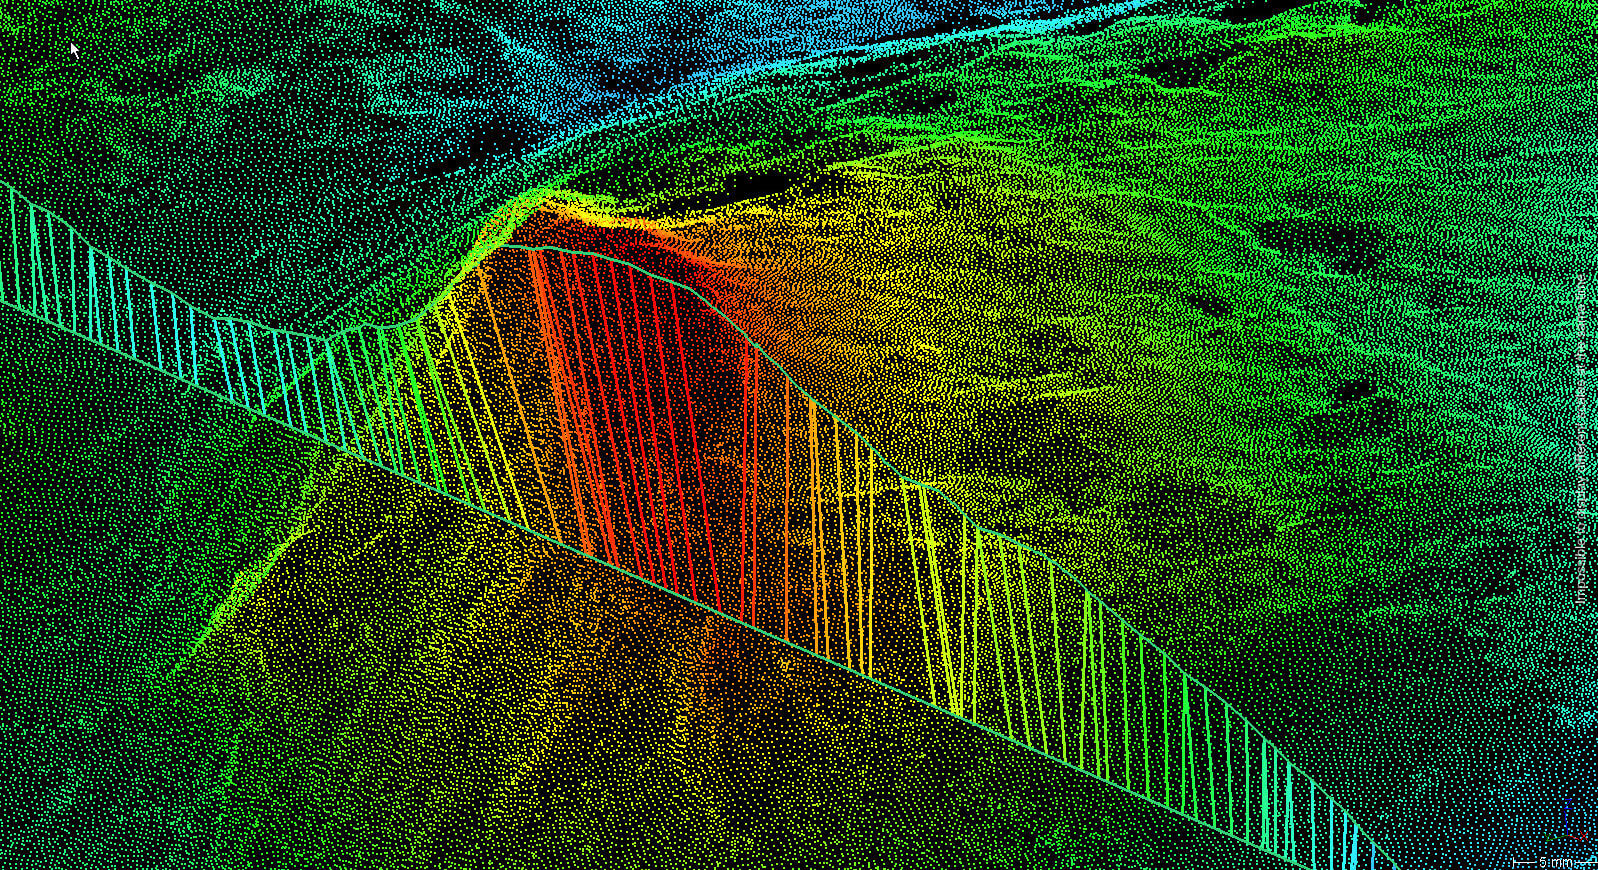 Point Cloud with analysis